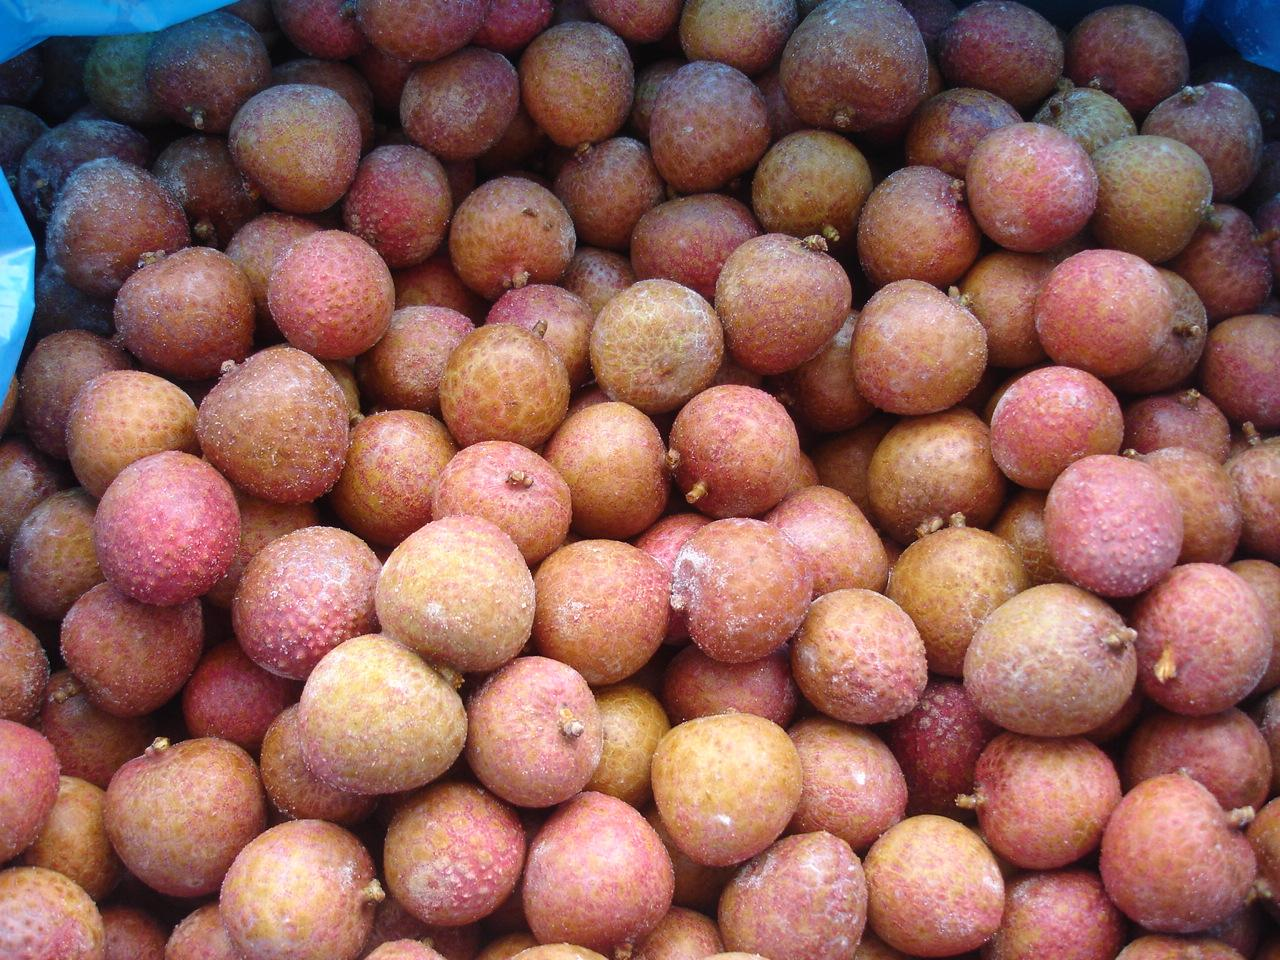 IQF Lychees ,Frozen Litchi,IQF Litchis,Frozen Lychees 7